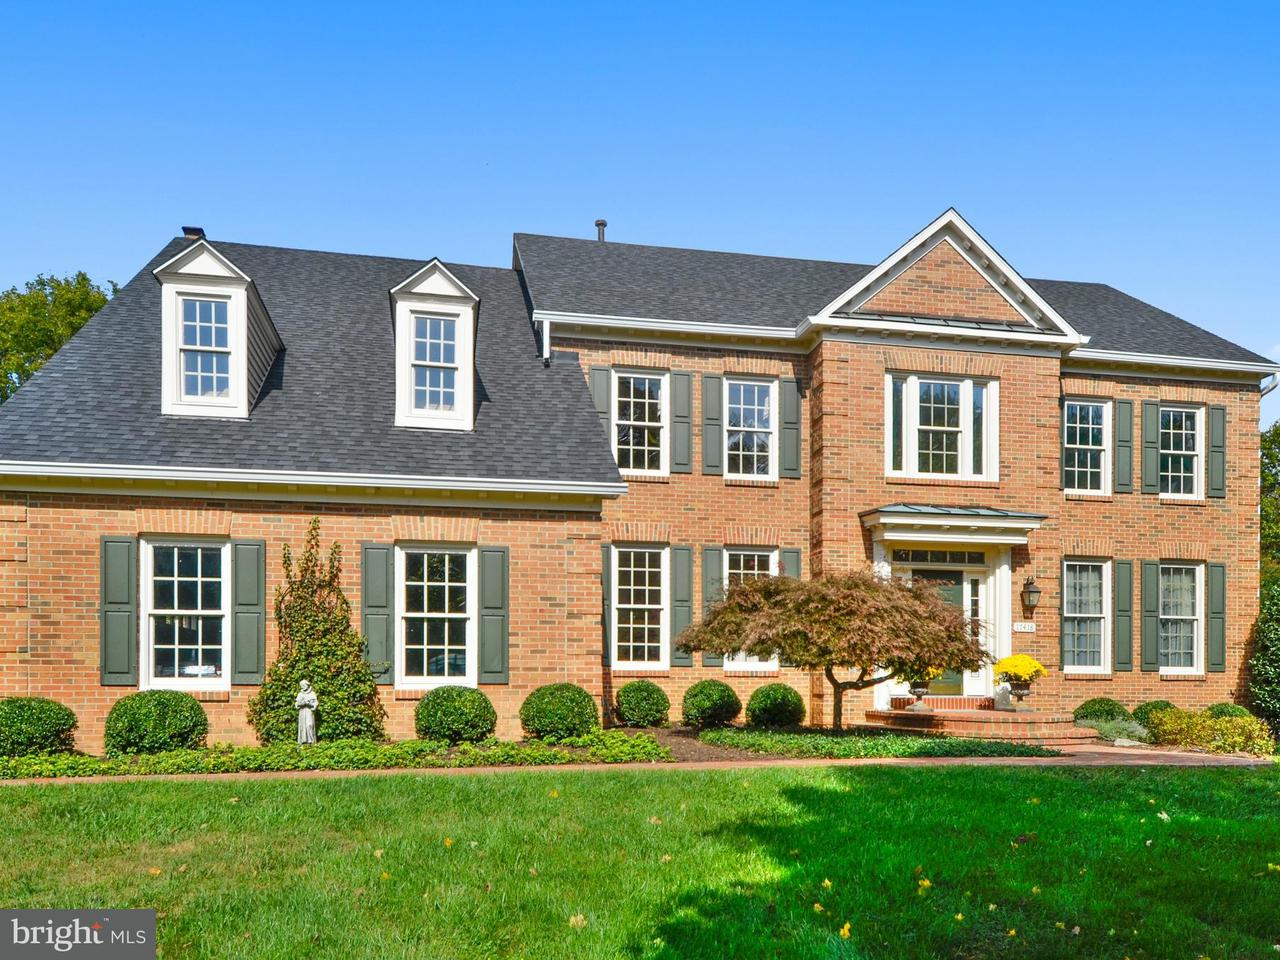 Single Family Home for Sale at 17418 Avenleigh Drive 17418 Avenleigh Drive Ashton, Maryland 20861 United States